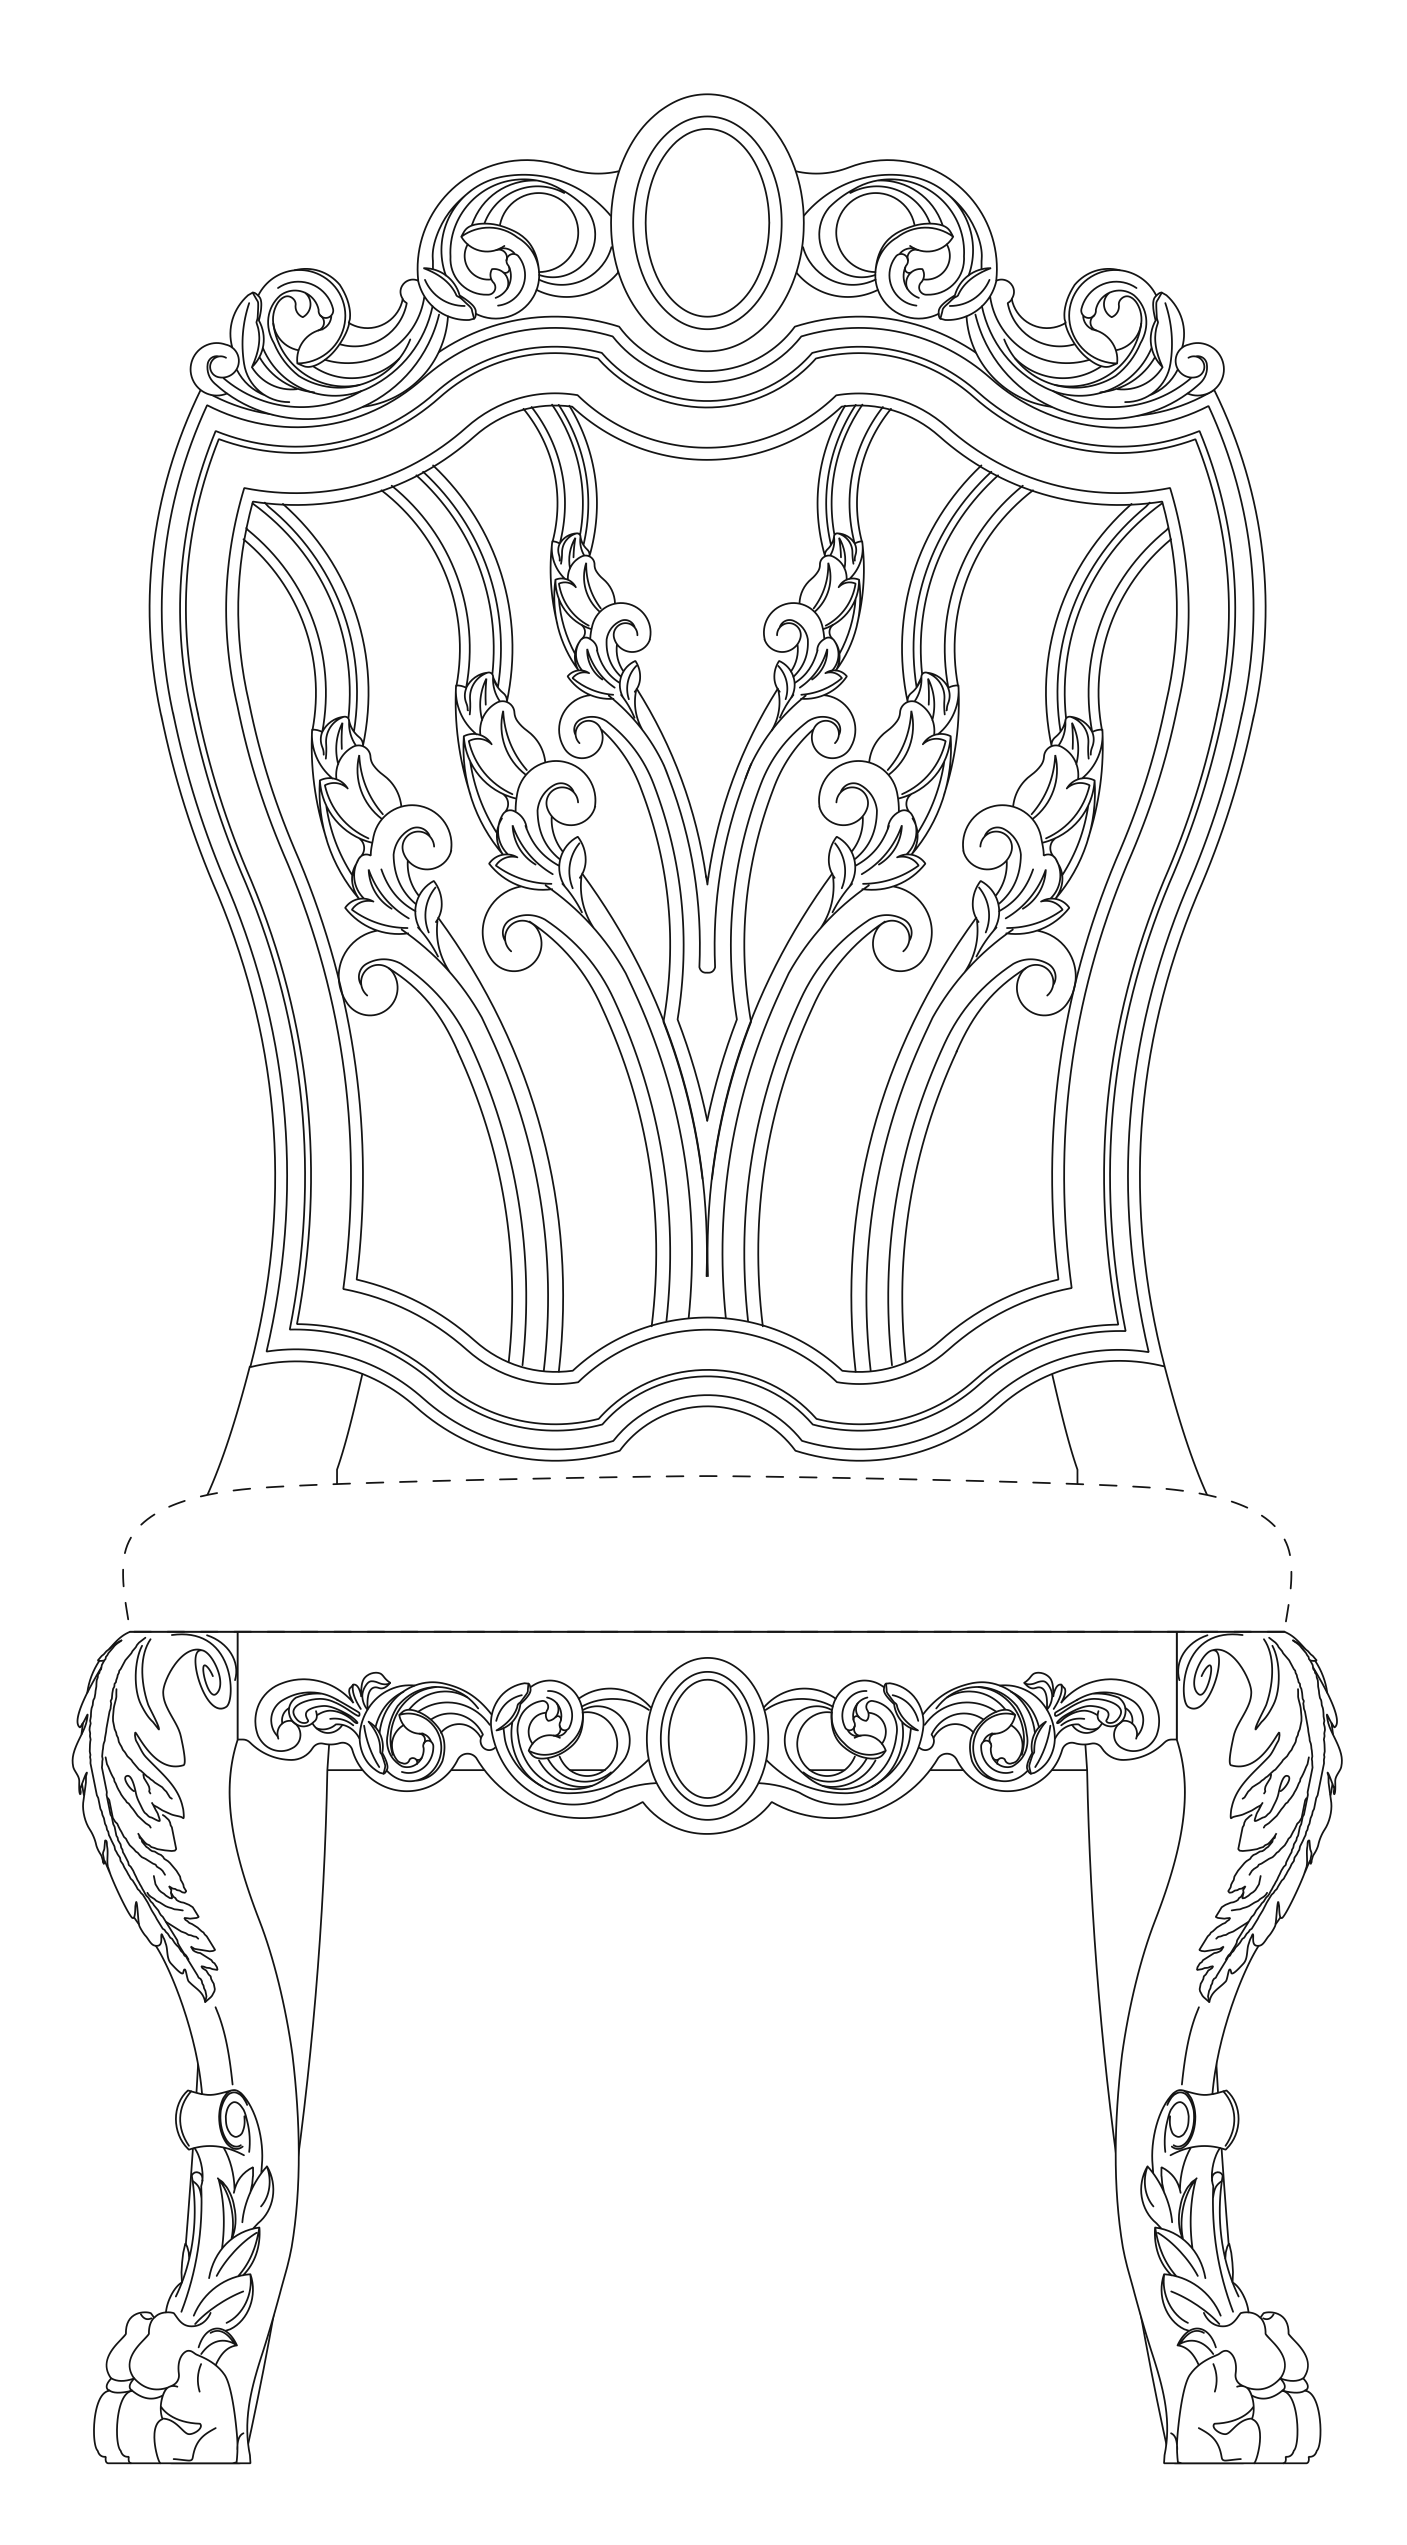 13_ptiserviceco_patent_drawing_design.png